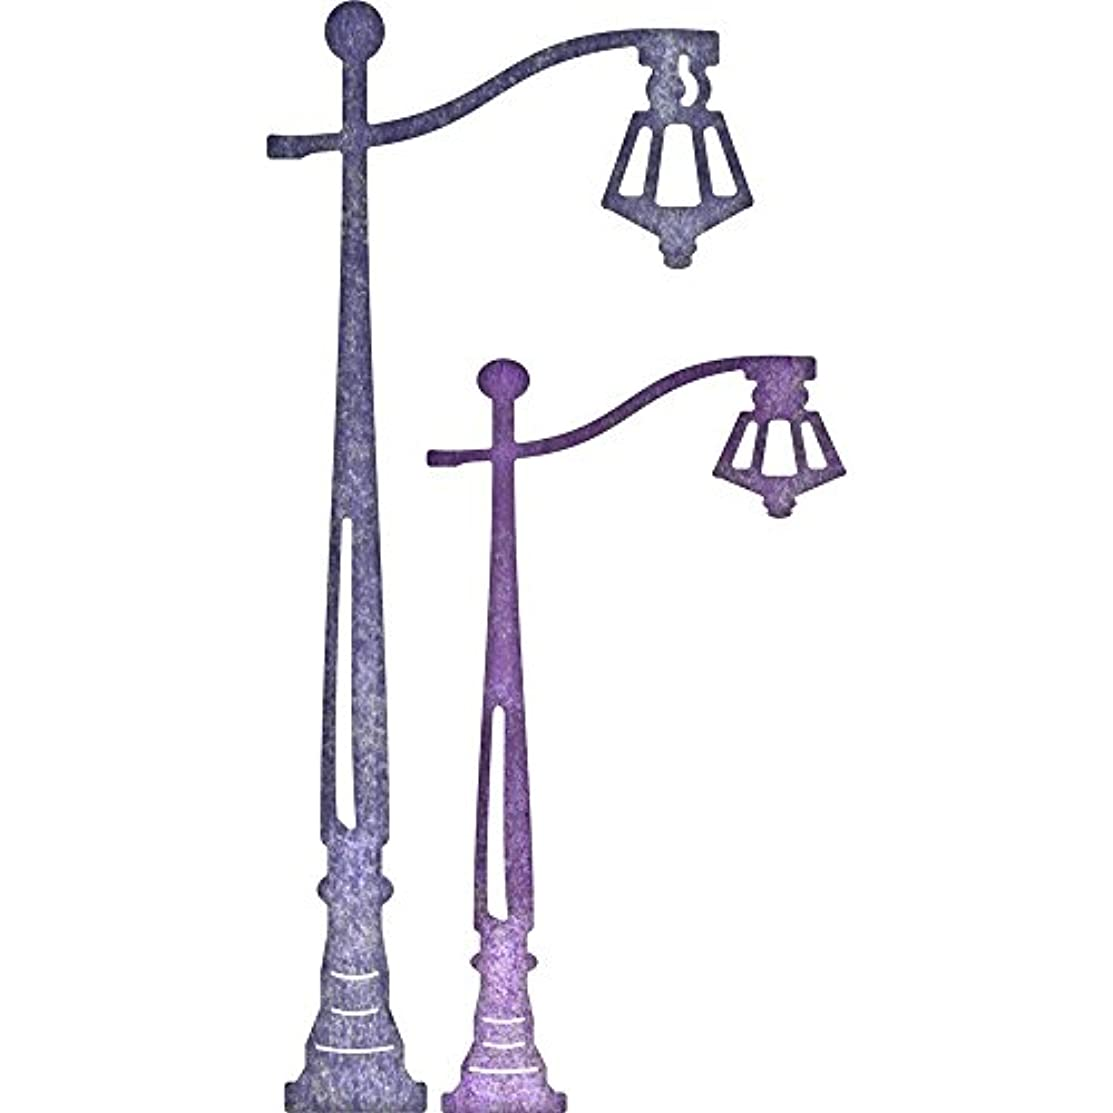 Cheery Lynn Designs B130 Colonial Lamp Post